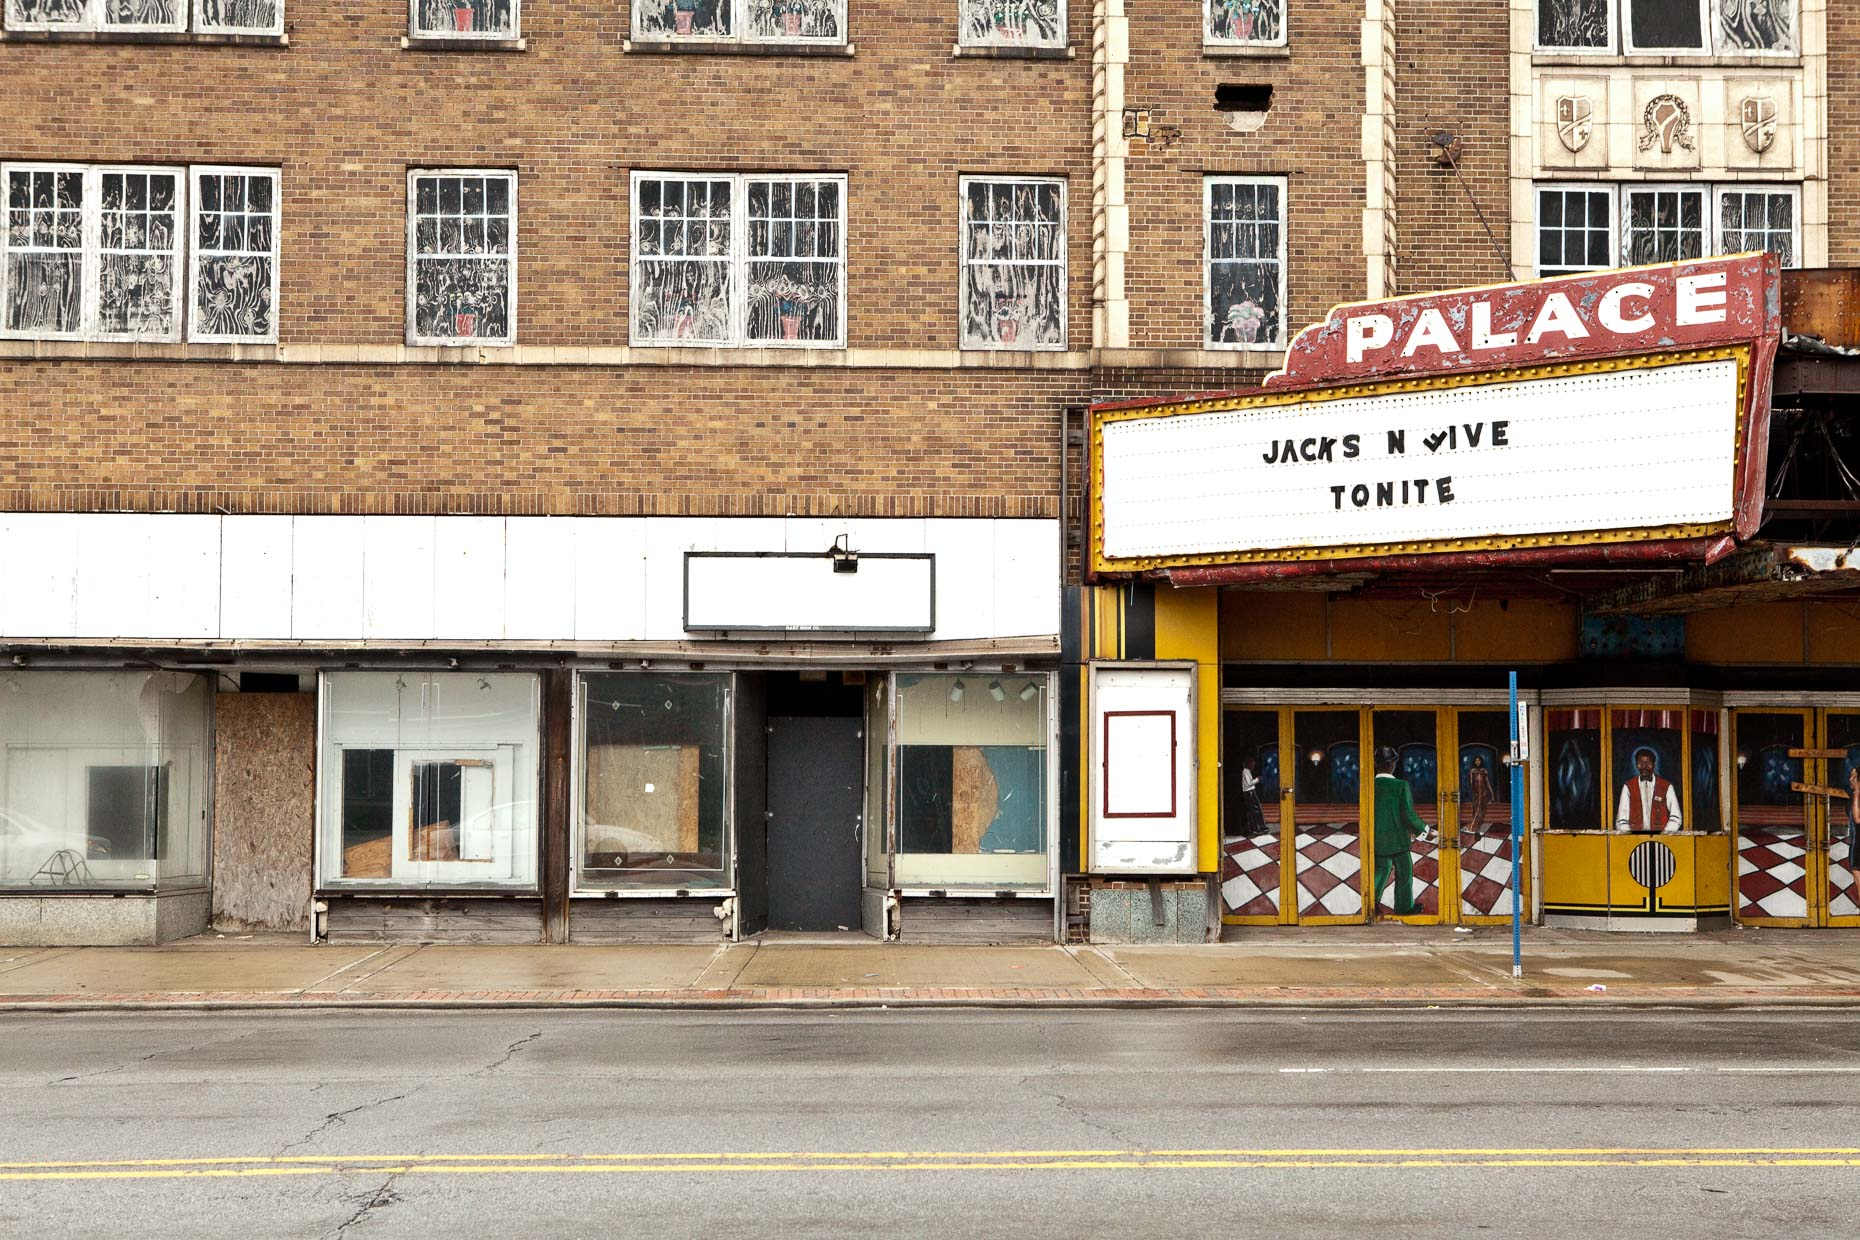 PALACE theater with marquee that reads JACKSON FIVE TONIGHT in Gary, Indiana by David Zaitz